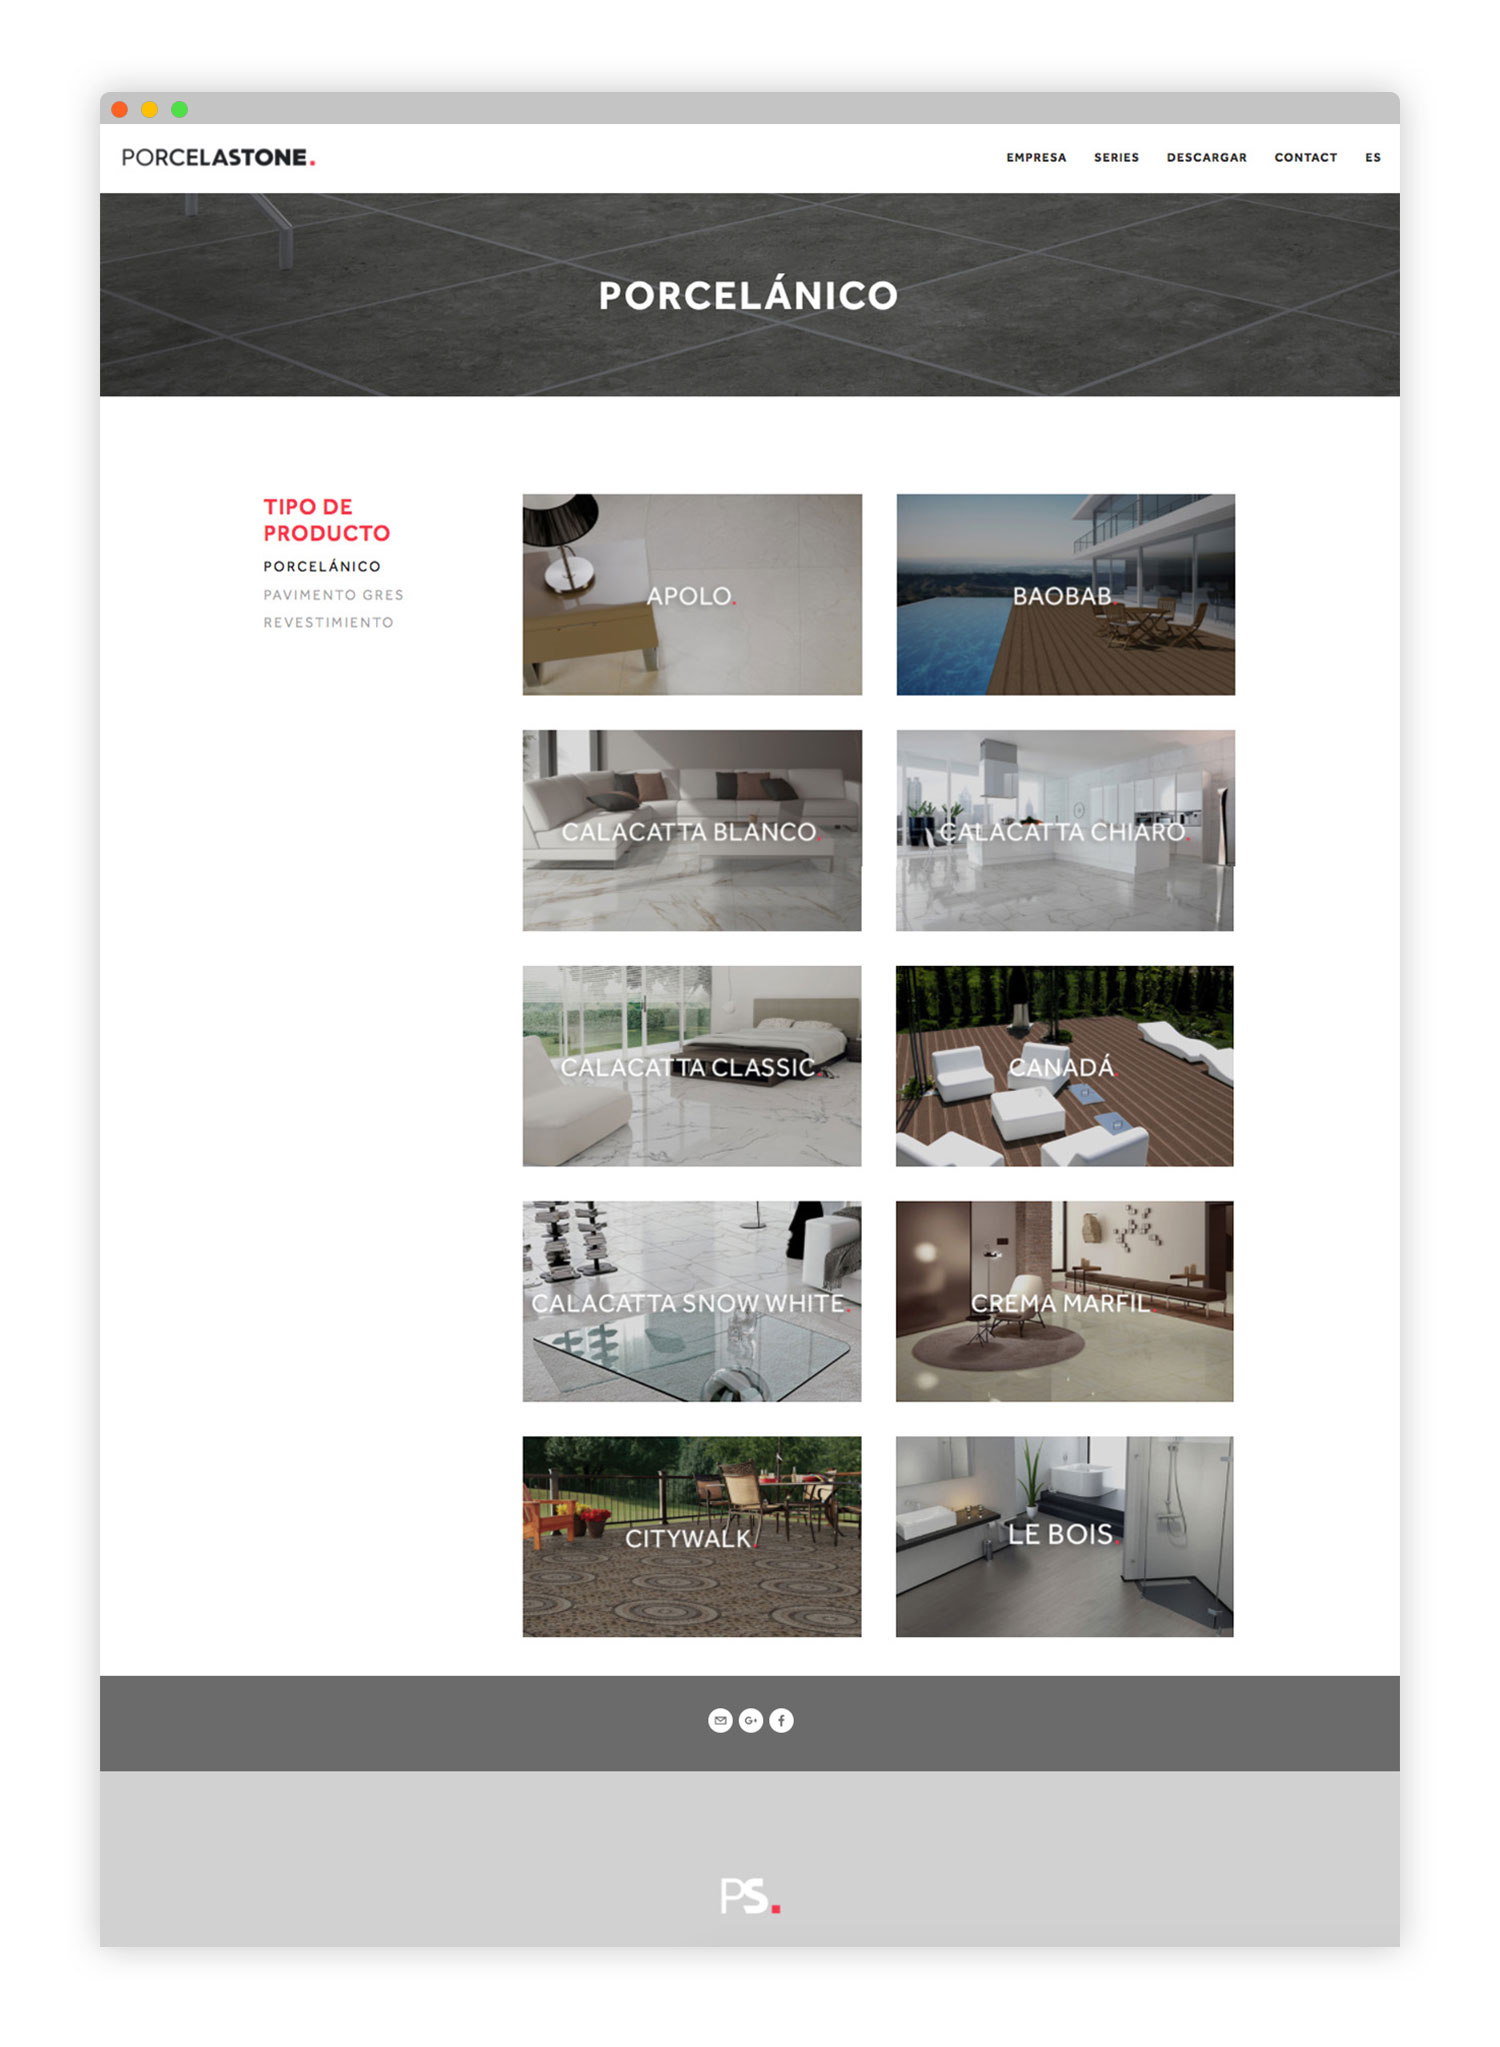 2-PORCELASTONE-WEBSITE-MANUEL-SERRA-SAEZ-SERRAYSAEZ-DESIGN-GRAPHIC.jpg